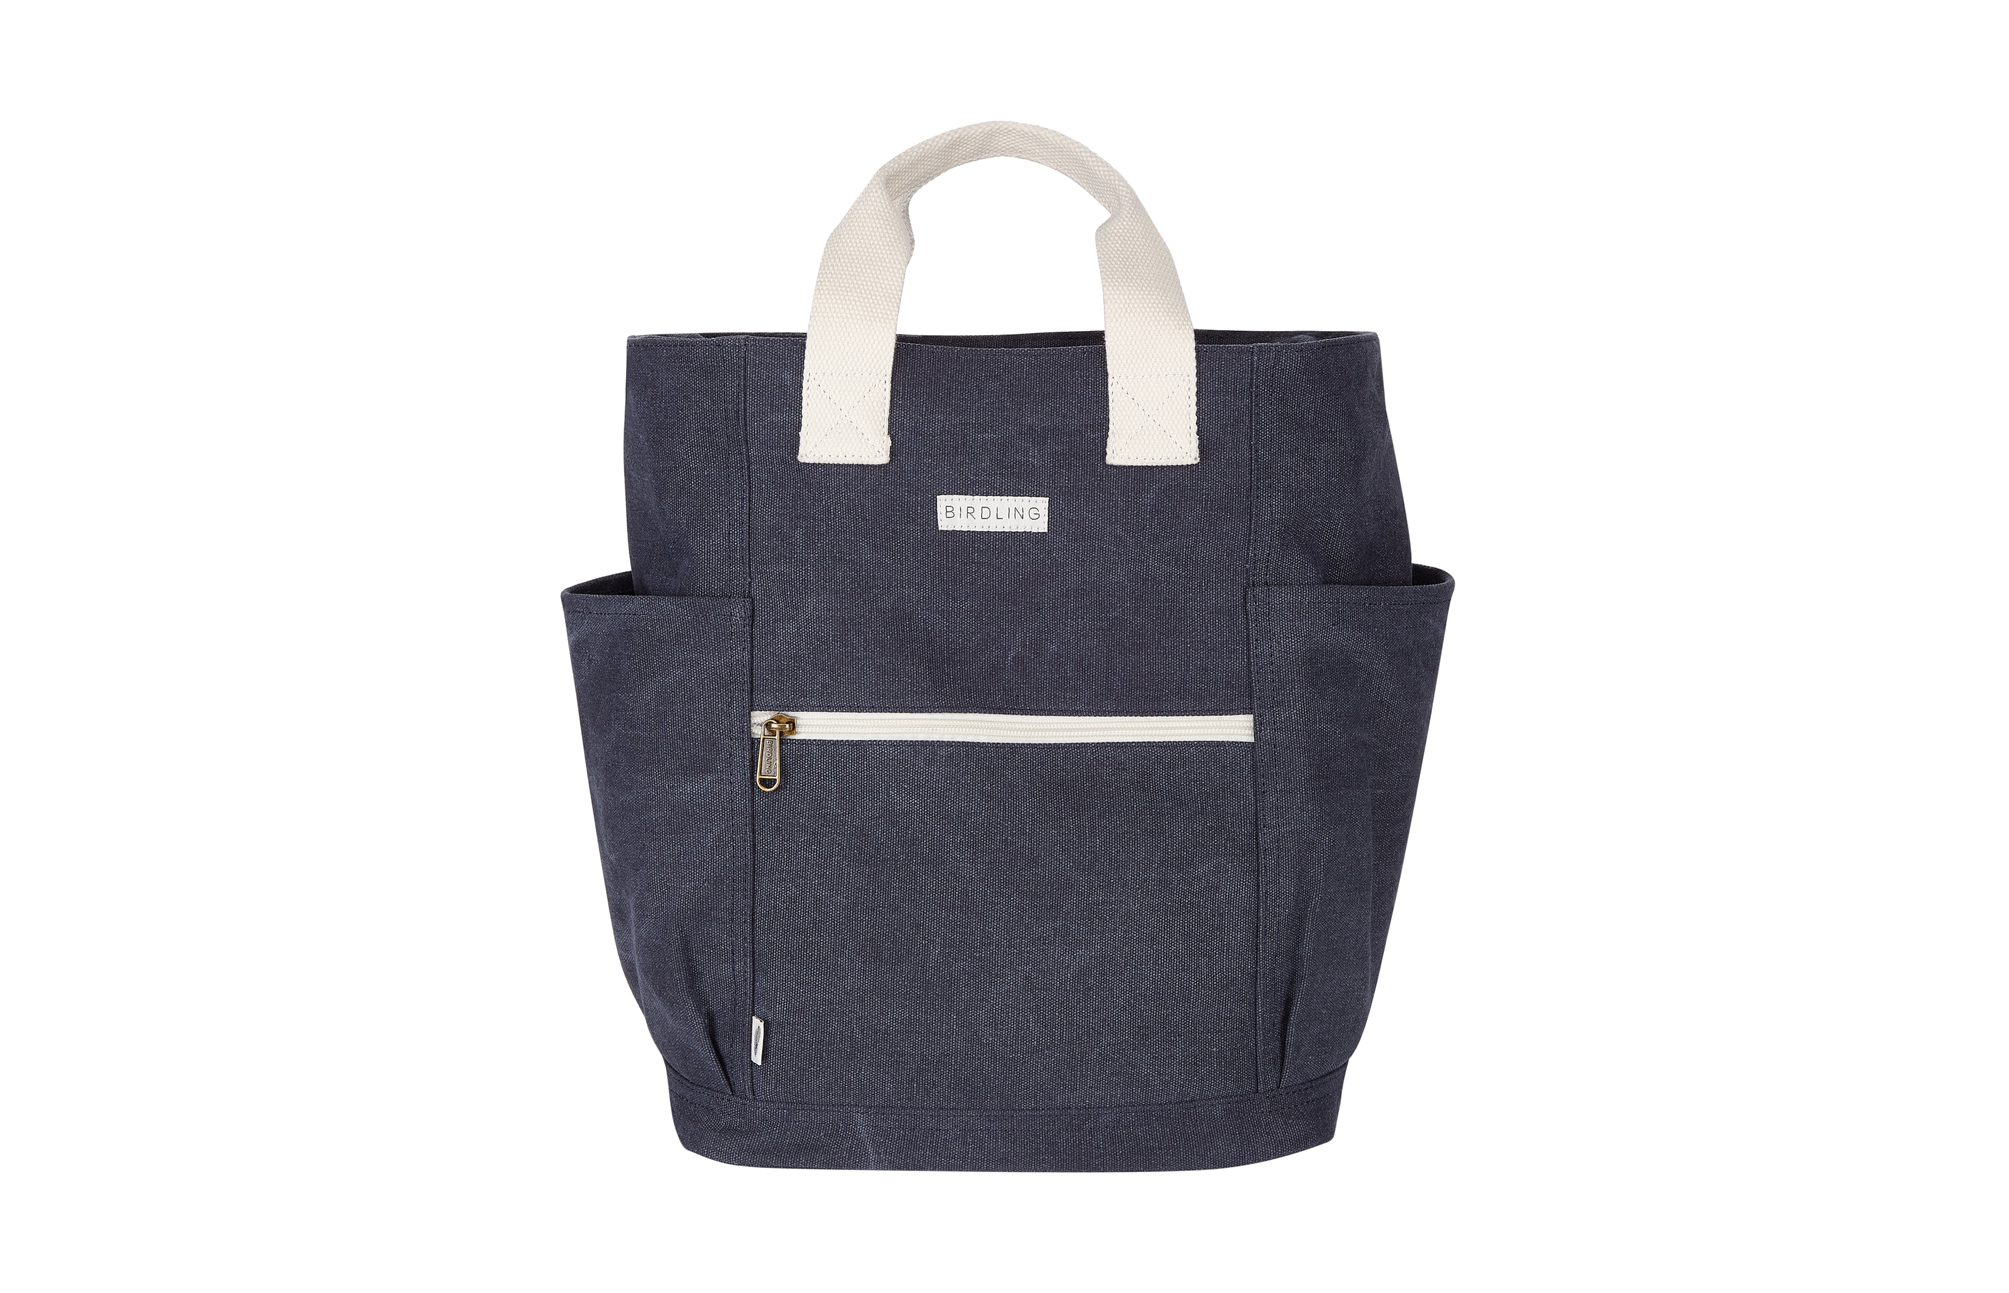 Blue and white Birdling Backpacker bag